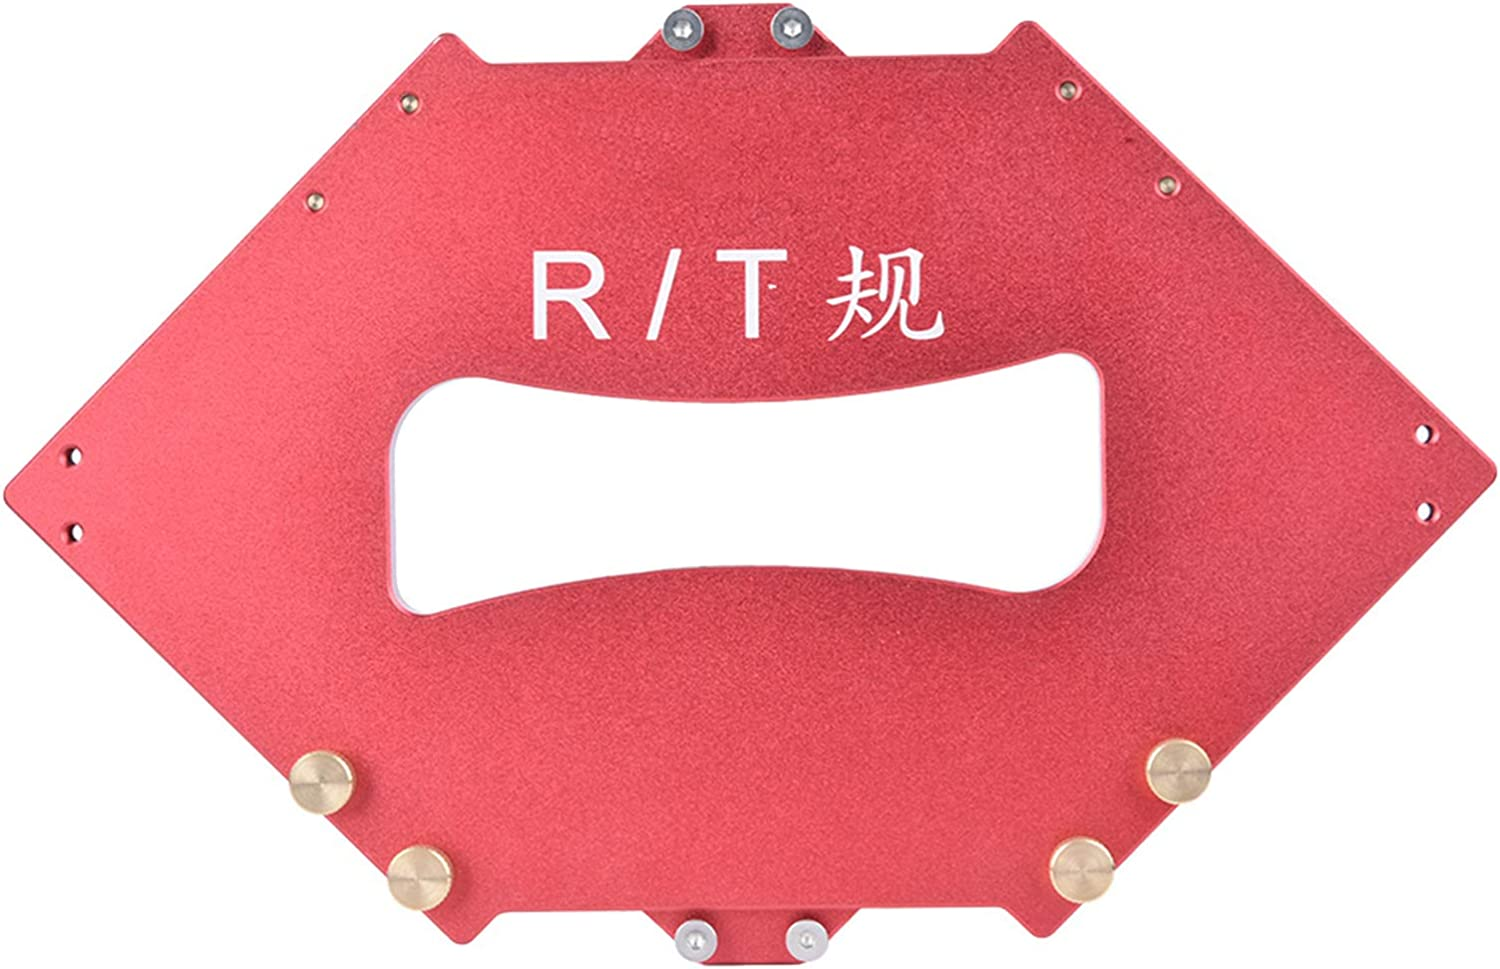 New Free Shipping Router Table We OFFer at cheap prices Corner Jig rust-resistance Ta aluminum alloy